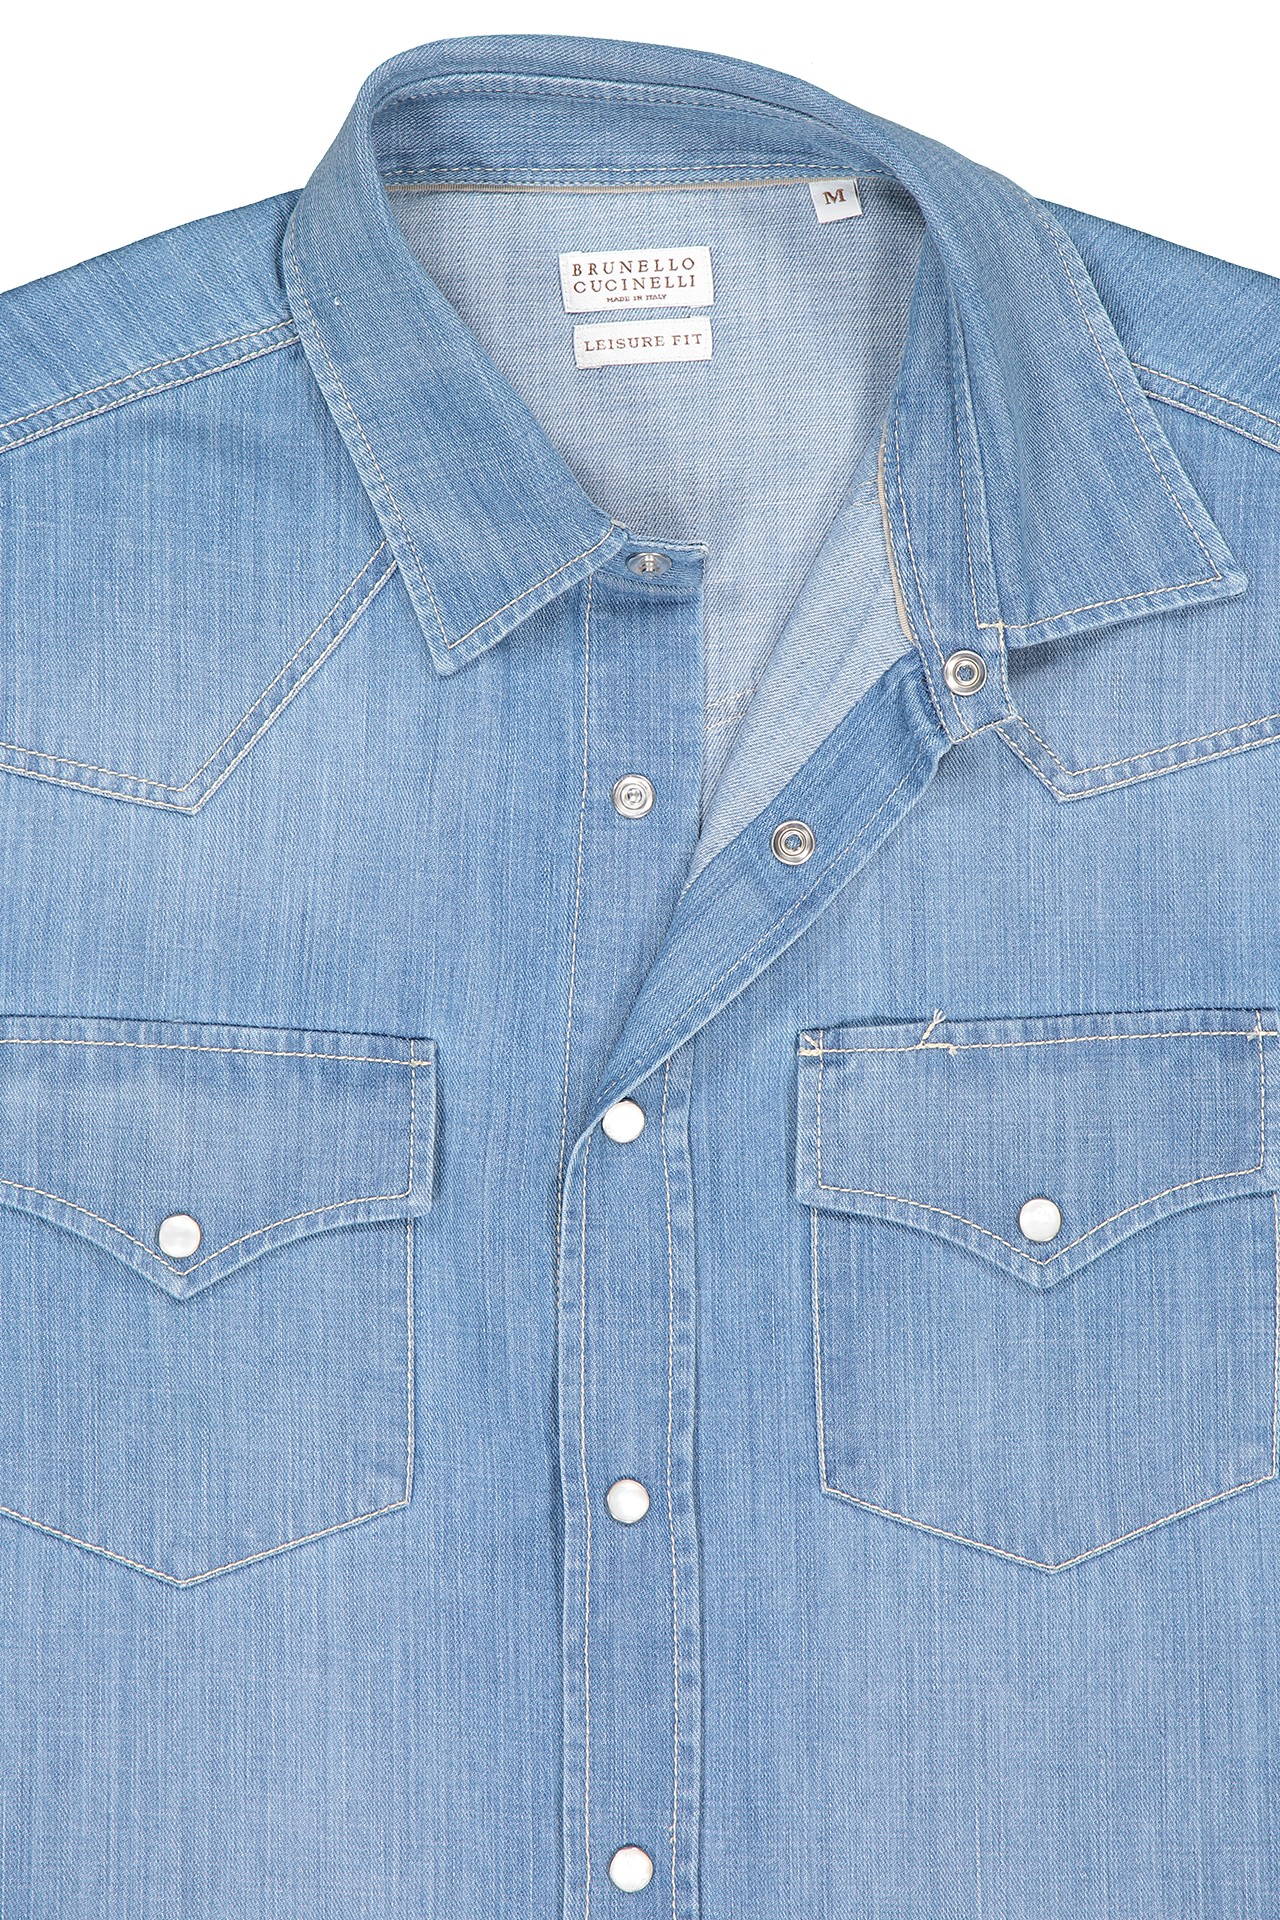 Front collar detail image of Brunello Cucinelli Men's Denim Shirt